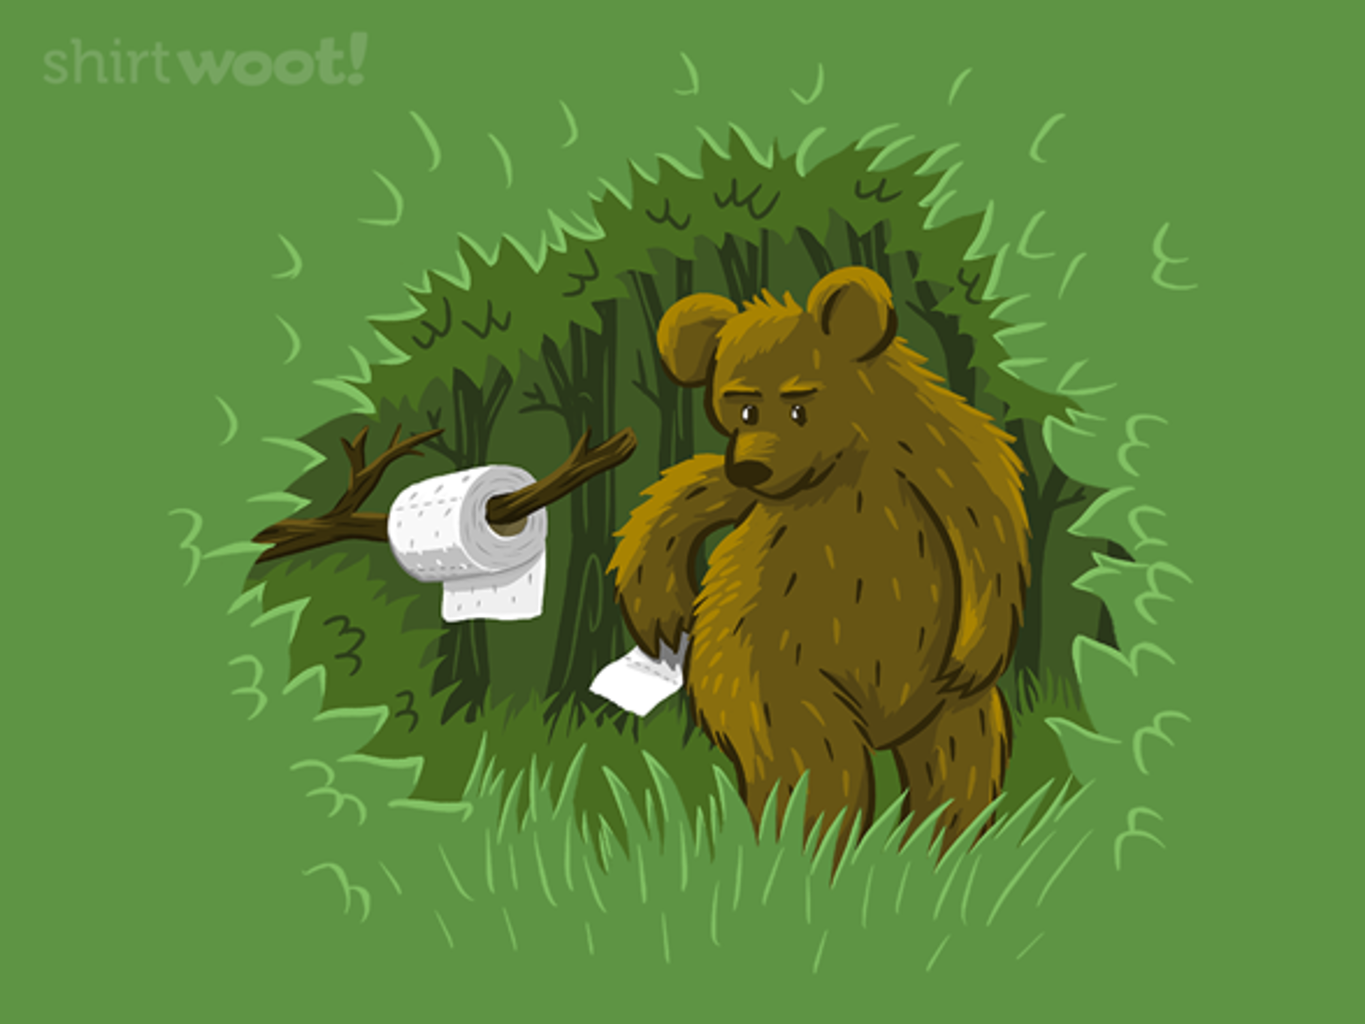 Woot!: Does the Bear...